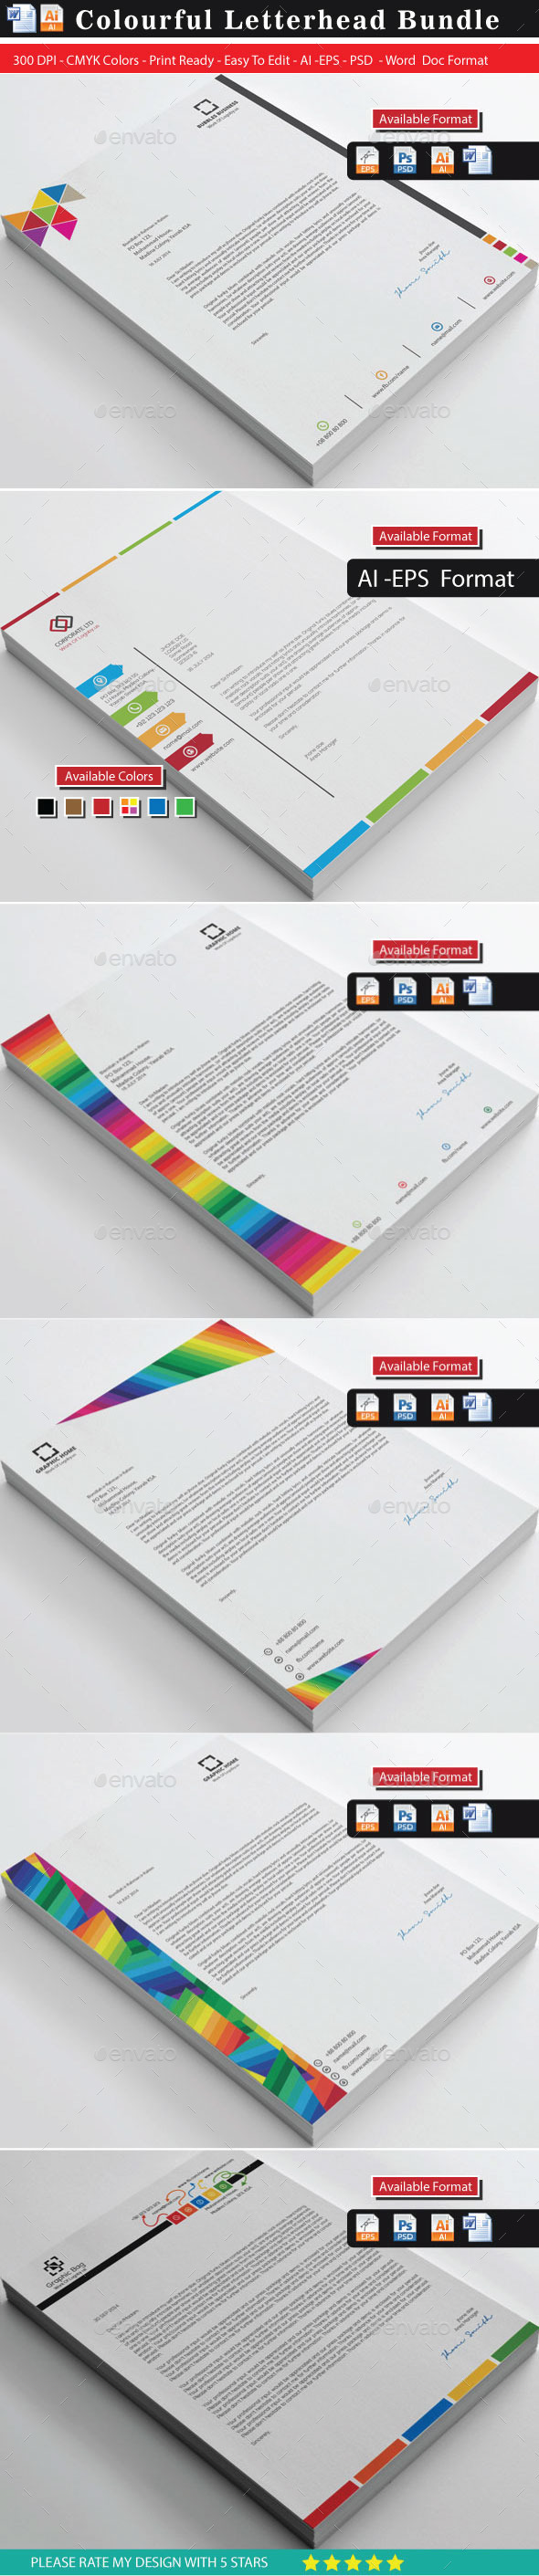 GraphicRiver 32 Clean & Creative Color Letterhead Bundle 10406432